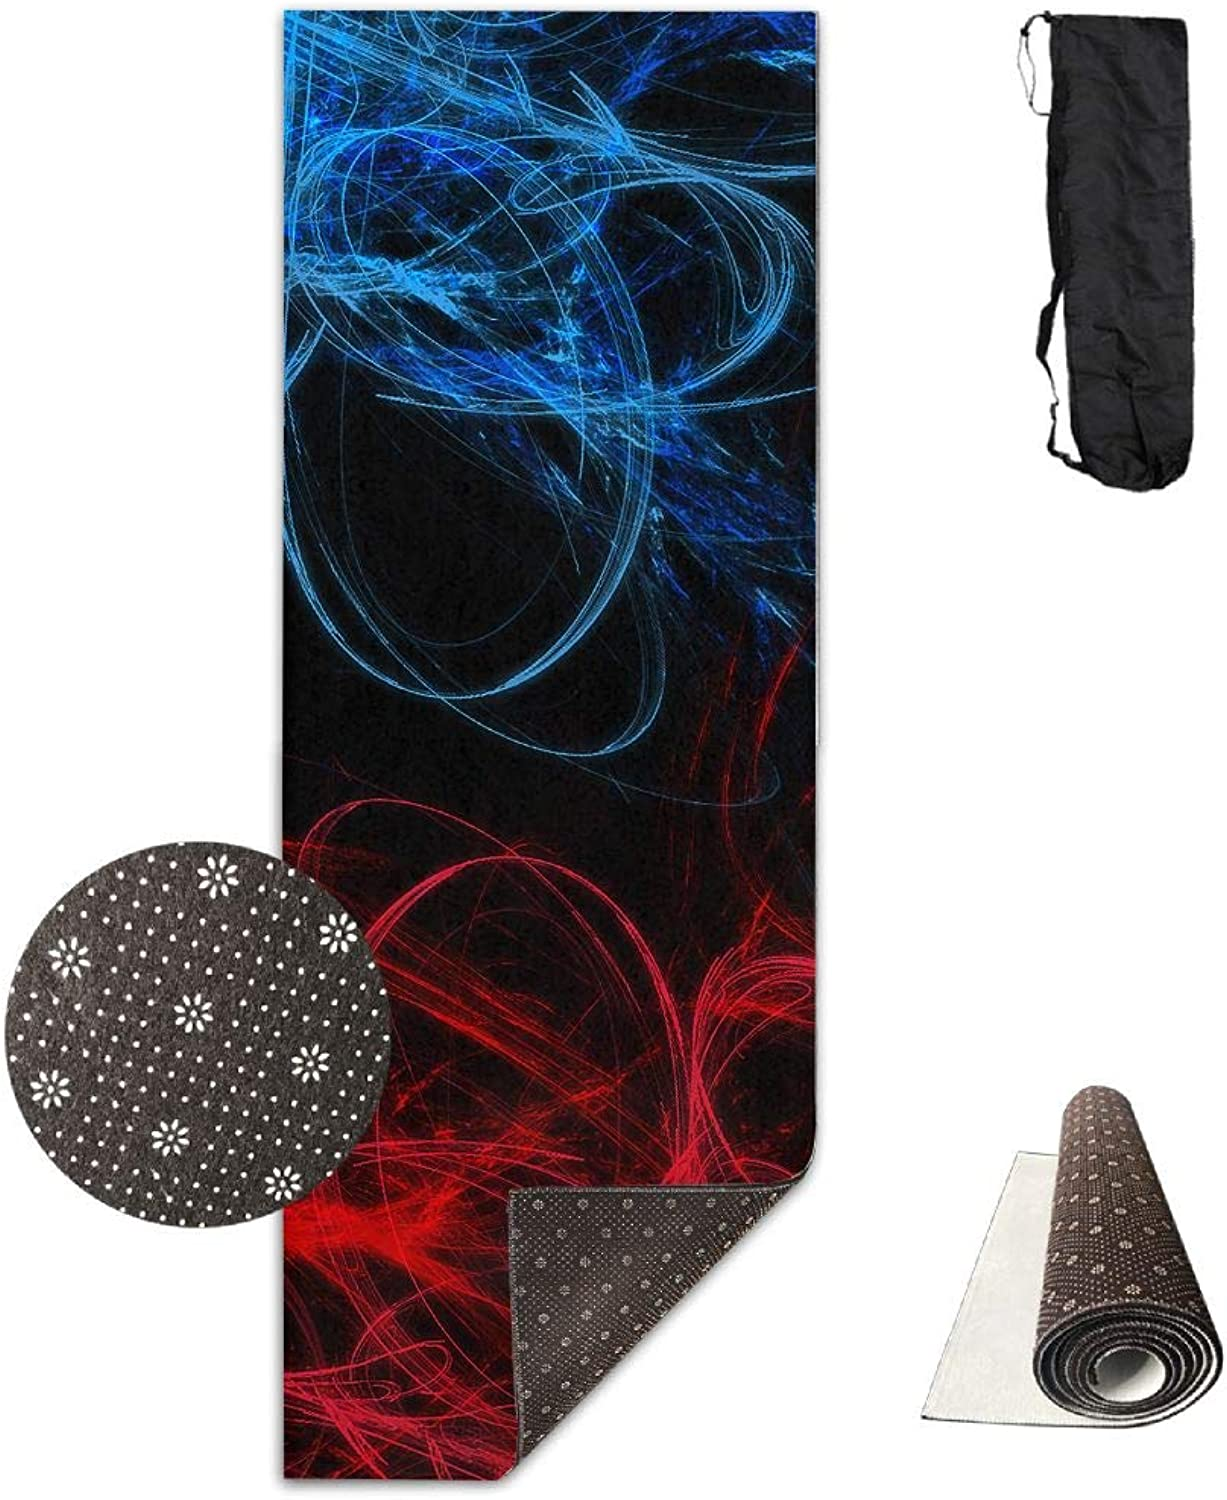 Yoga Mat Non Slip 24  X 71  Exercise Mats Abstract Circles Lines Premium Fitness Pilates Carrying Strap